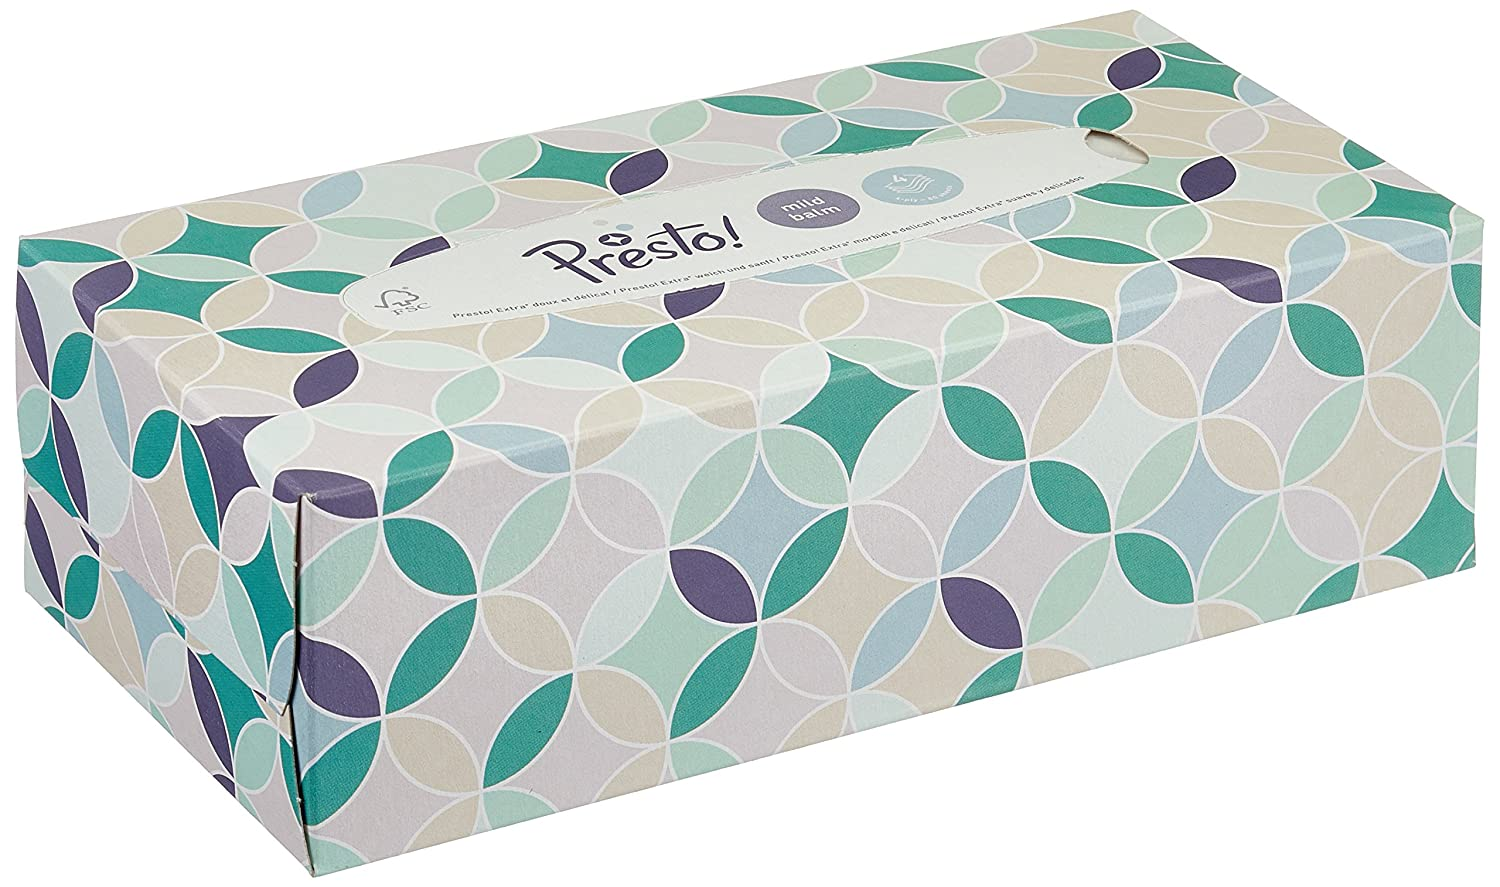 Presto 4-Ply Facial Tissues with Mild Balm Brand 12 Pack 12 x 80 Tissues